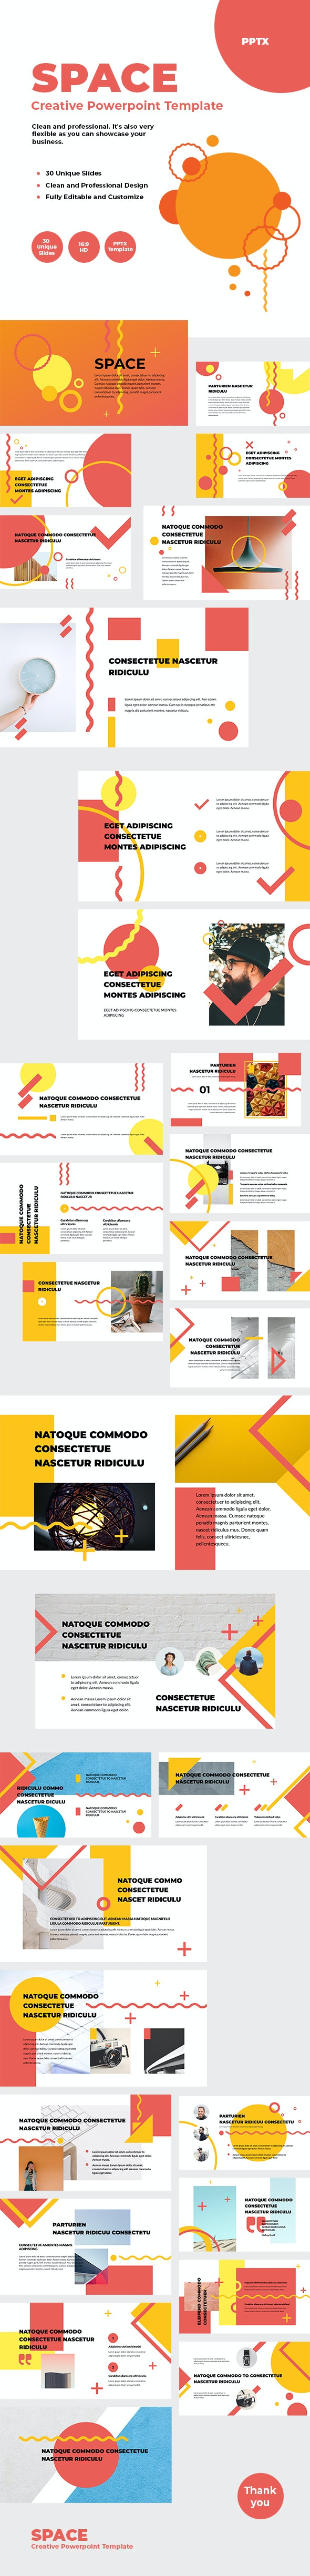 SPACE - Creative Powerpoint Template - Creative PowerPoint Templates